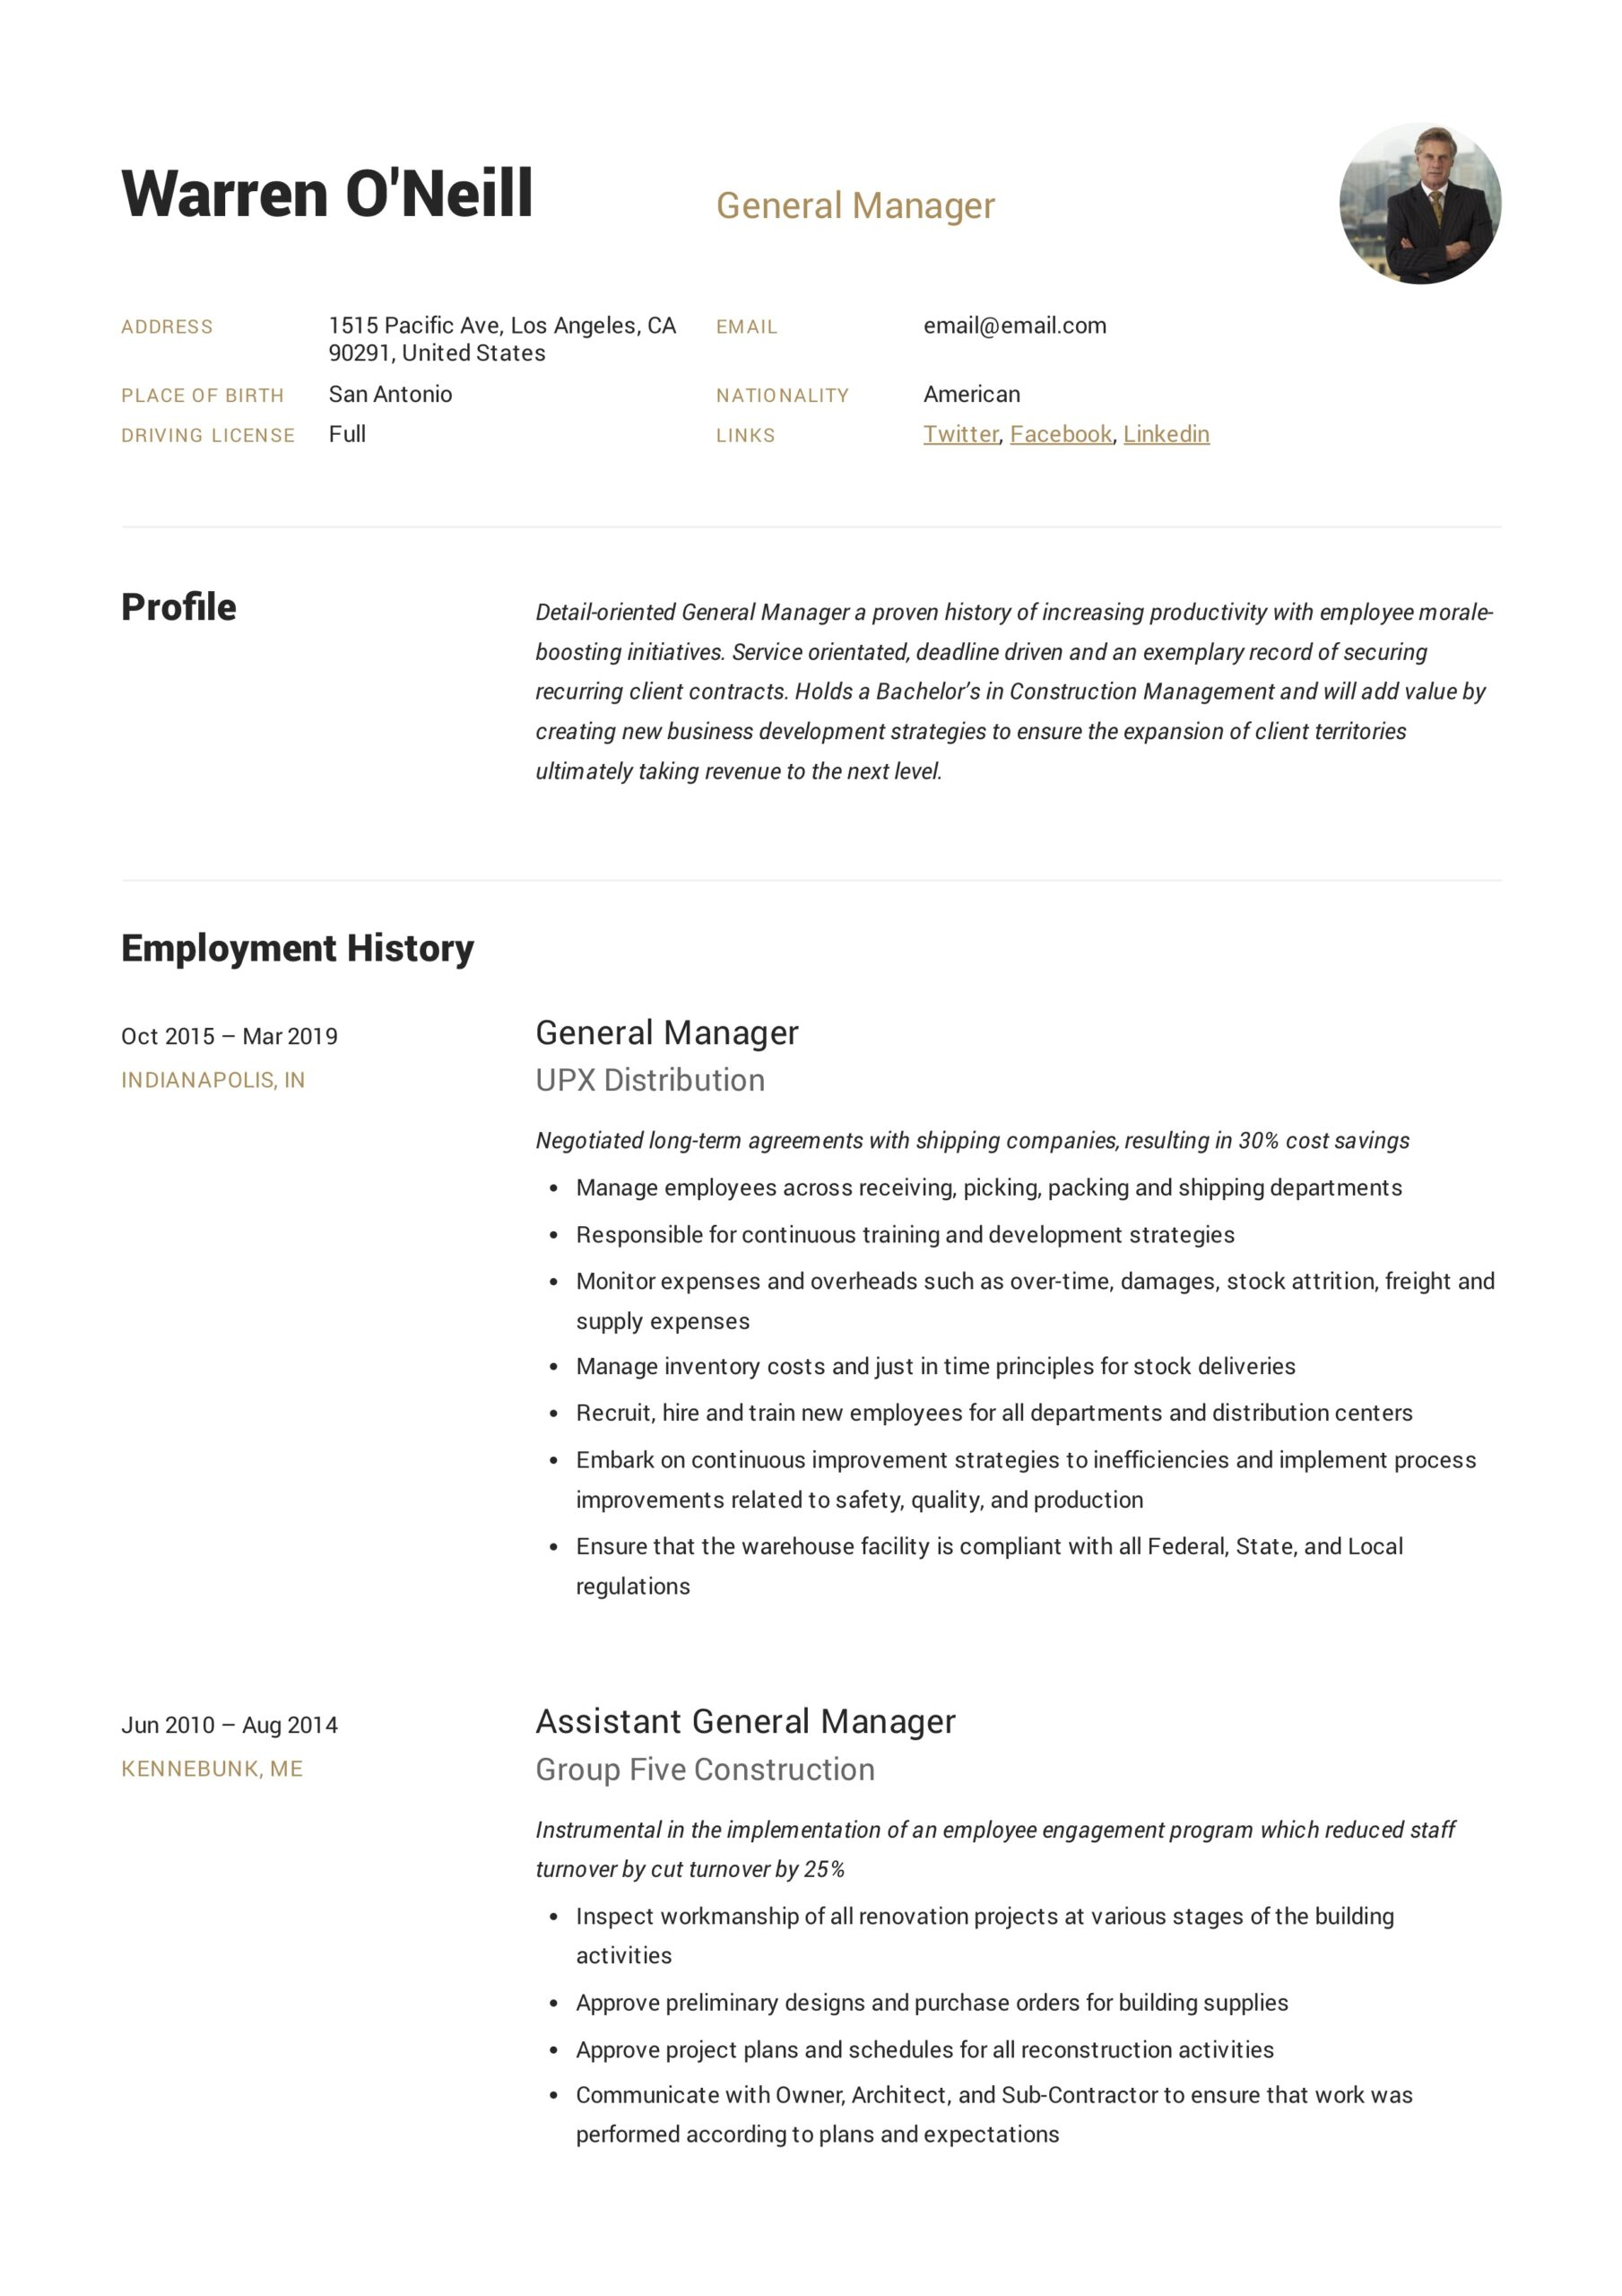 general manager resume writing guide examples pdf skills for neill public relations Resume Skills For General Manager Resume